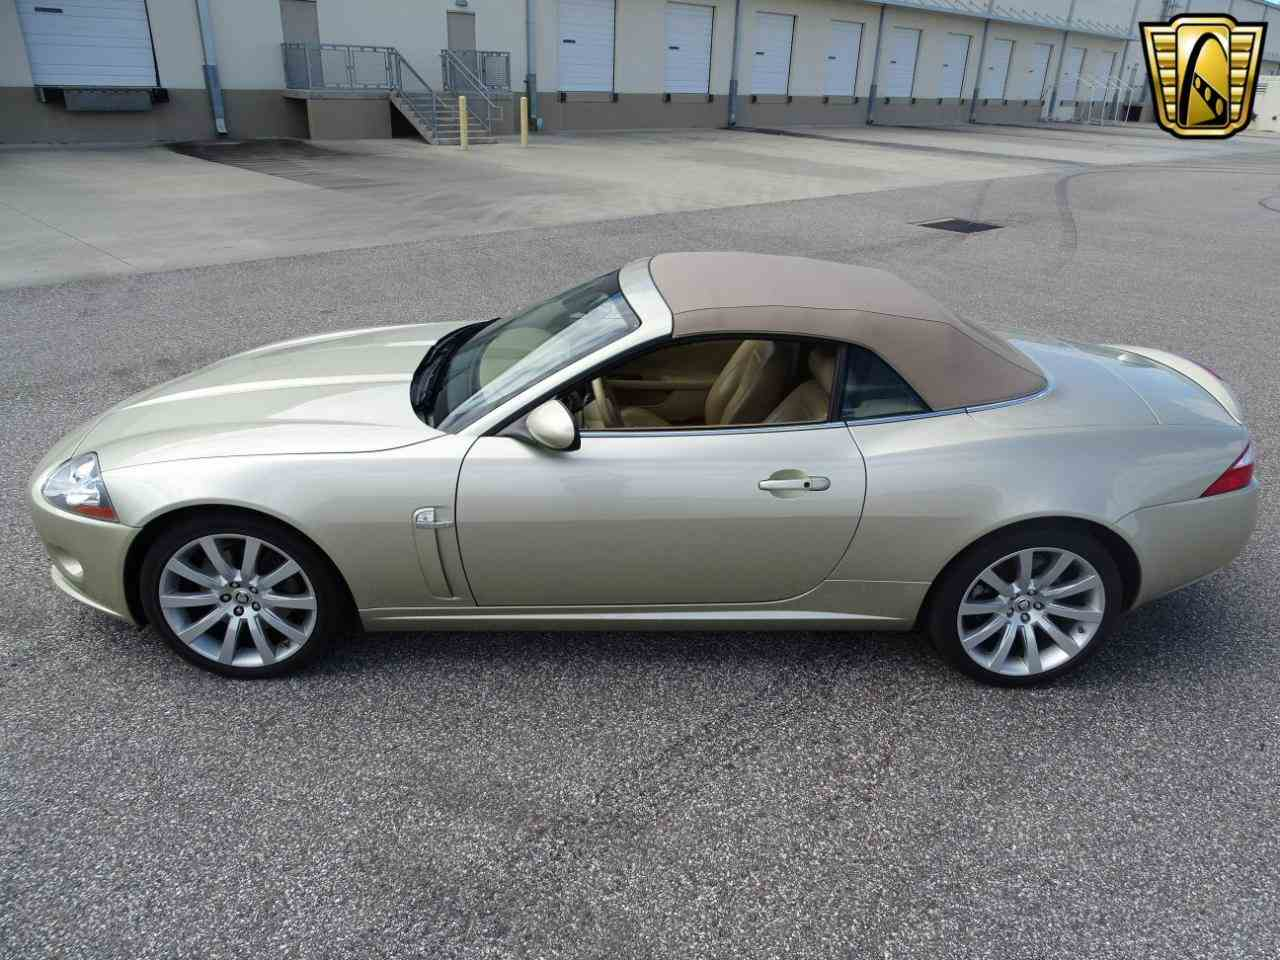 Large Picture of 2008 Jaguar XK located in Ruskin Florida - $25,995.00 - KPQW